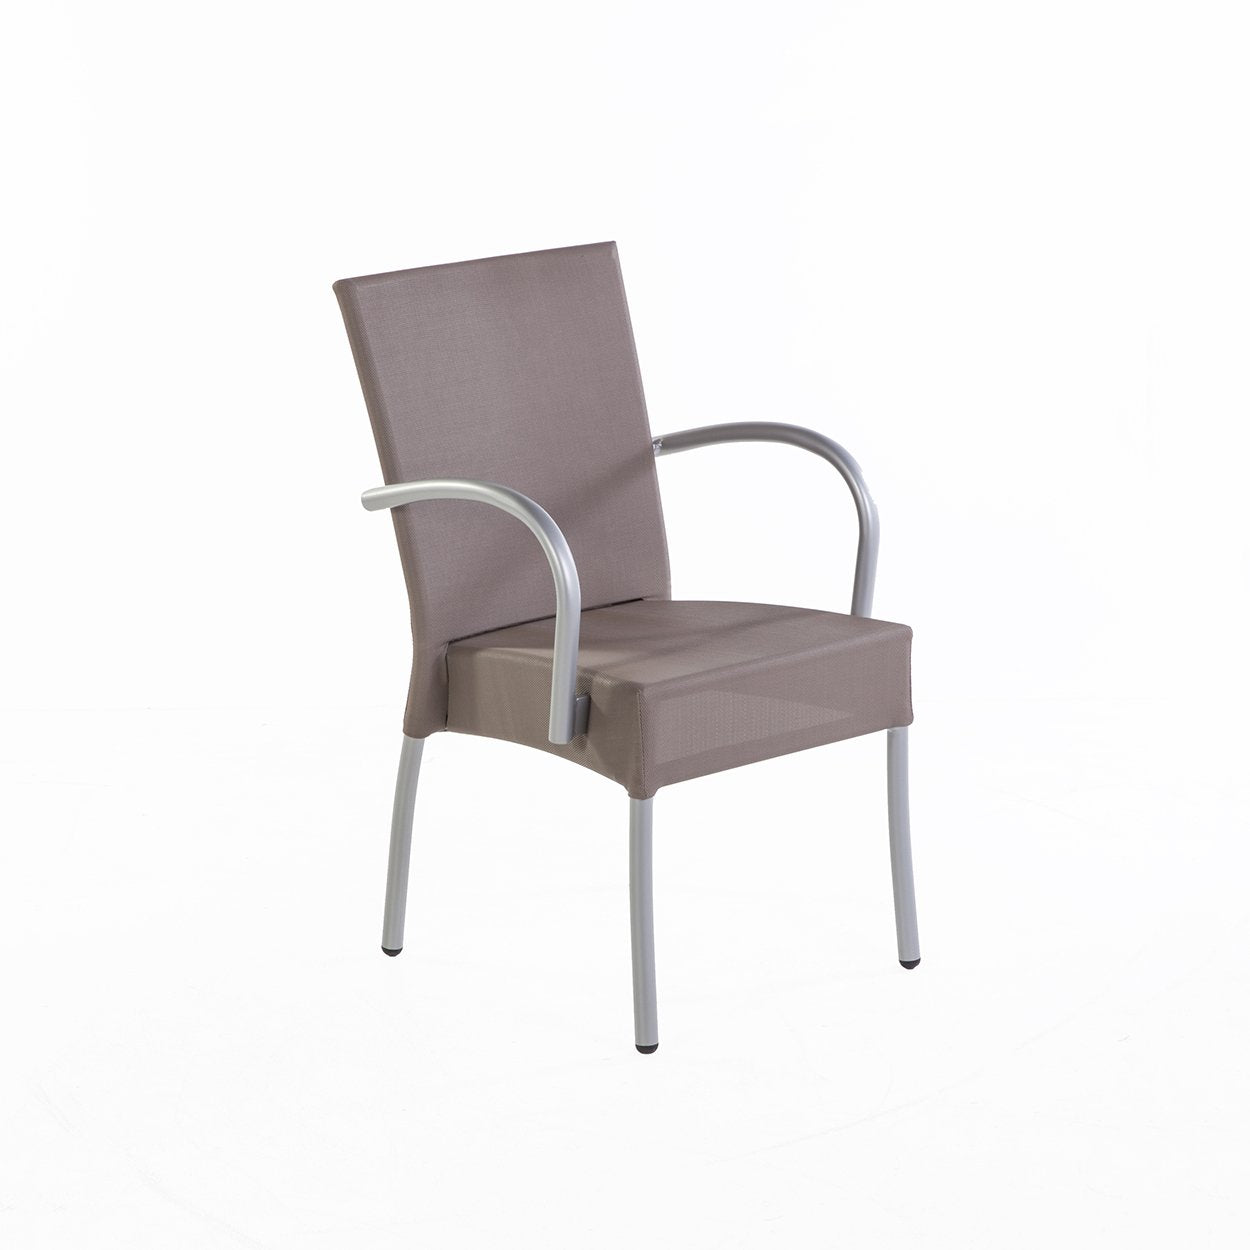 [FCC1804TAUPE] Dale Outdoor arm chair